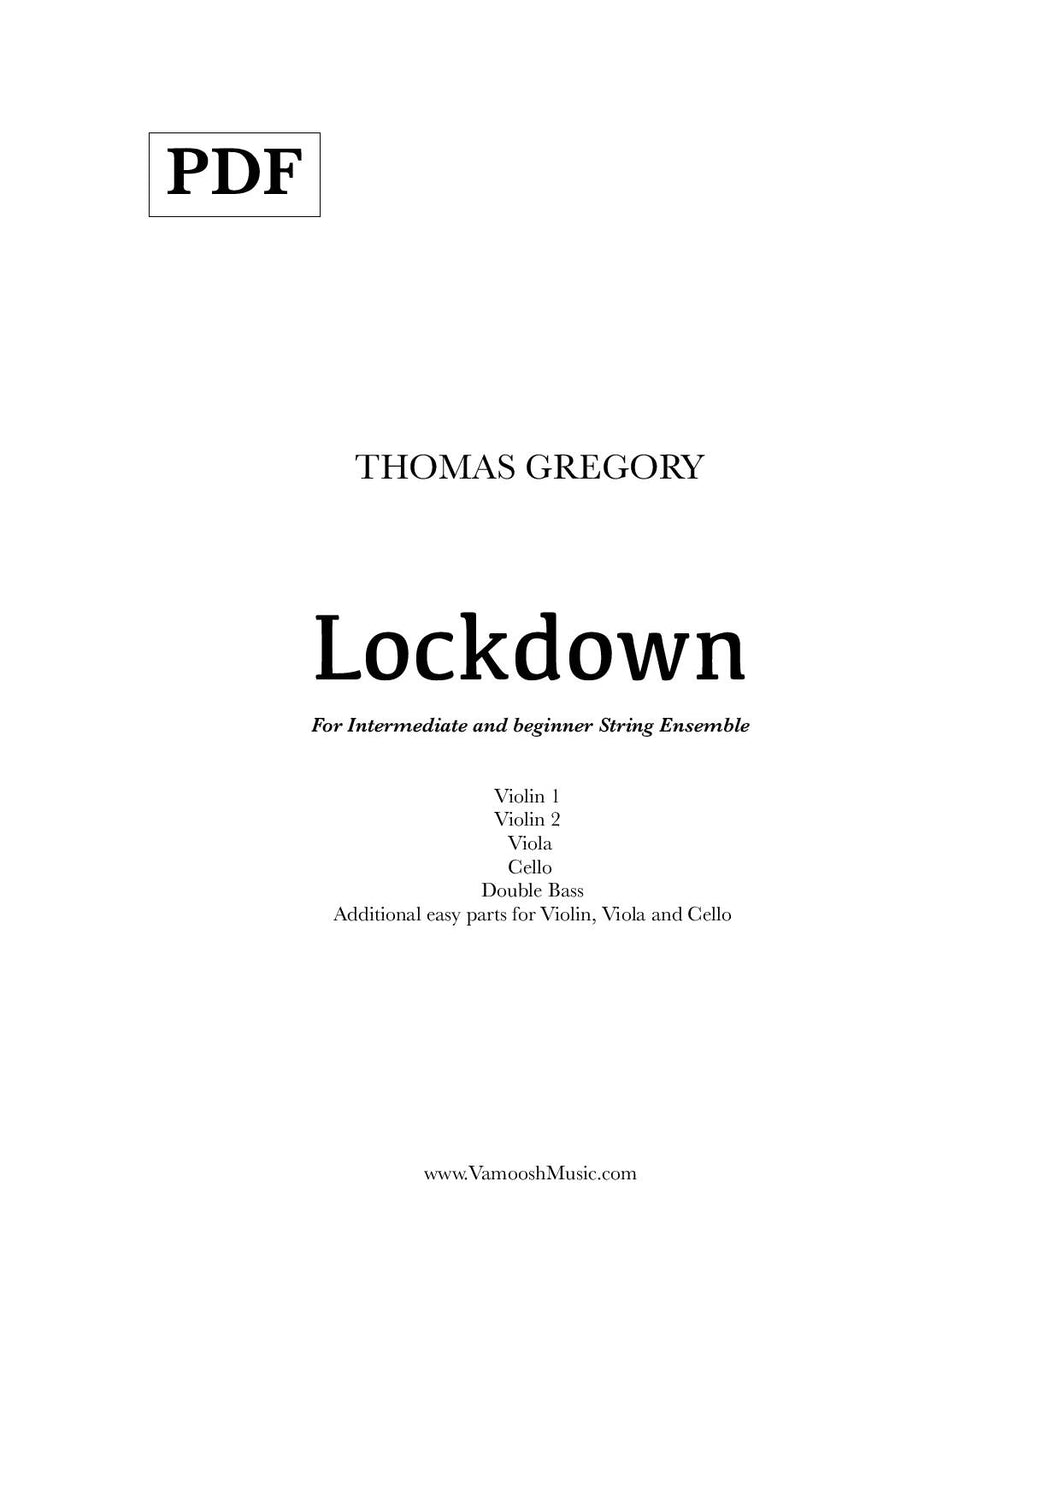 Lockdown (PDF) by Thomas Gregory